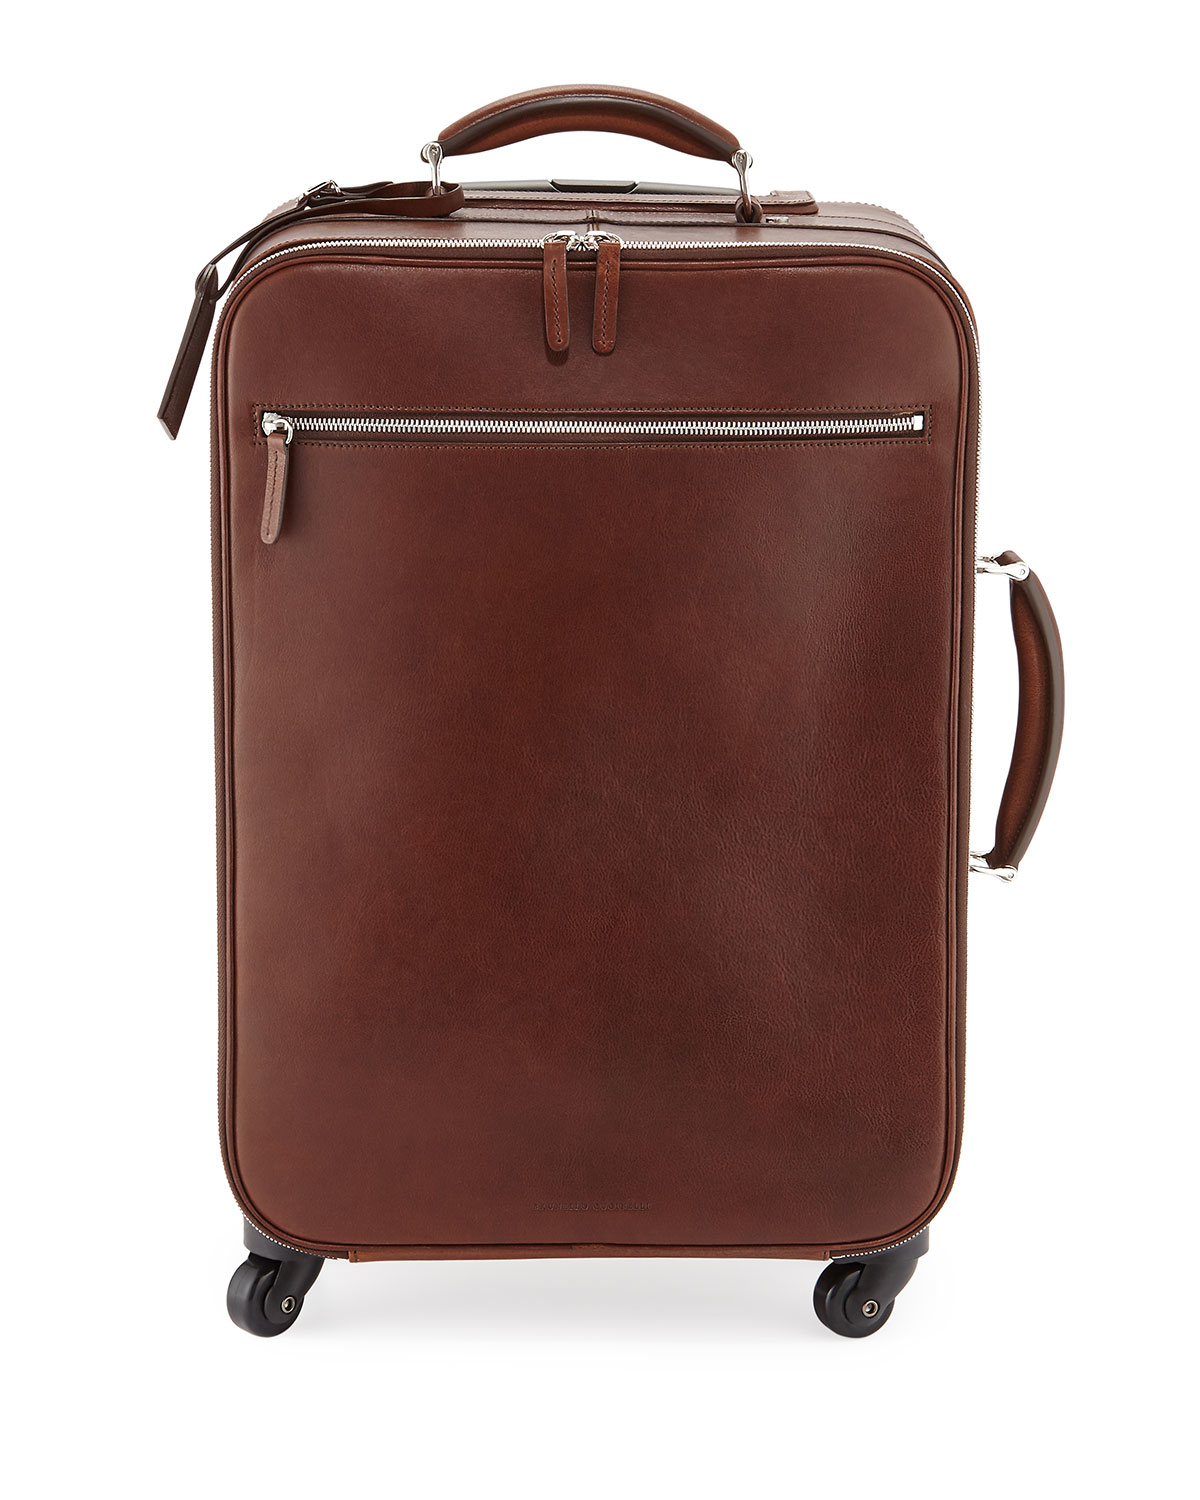 Brunello cucinelli Leather Trolley Bag in Brown for Men   Lyst